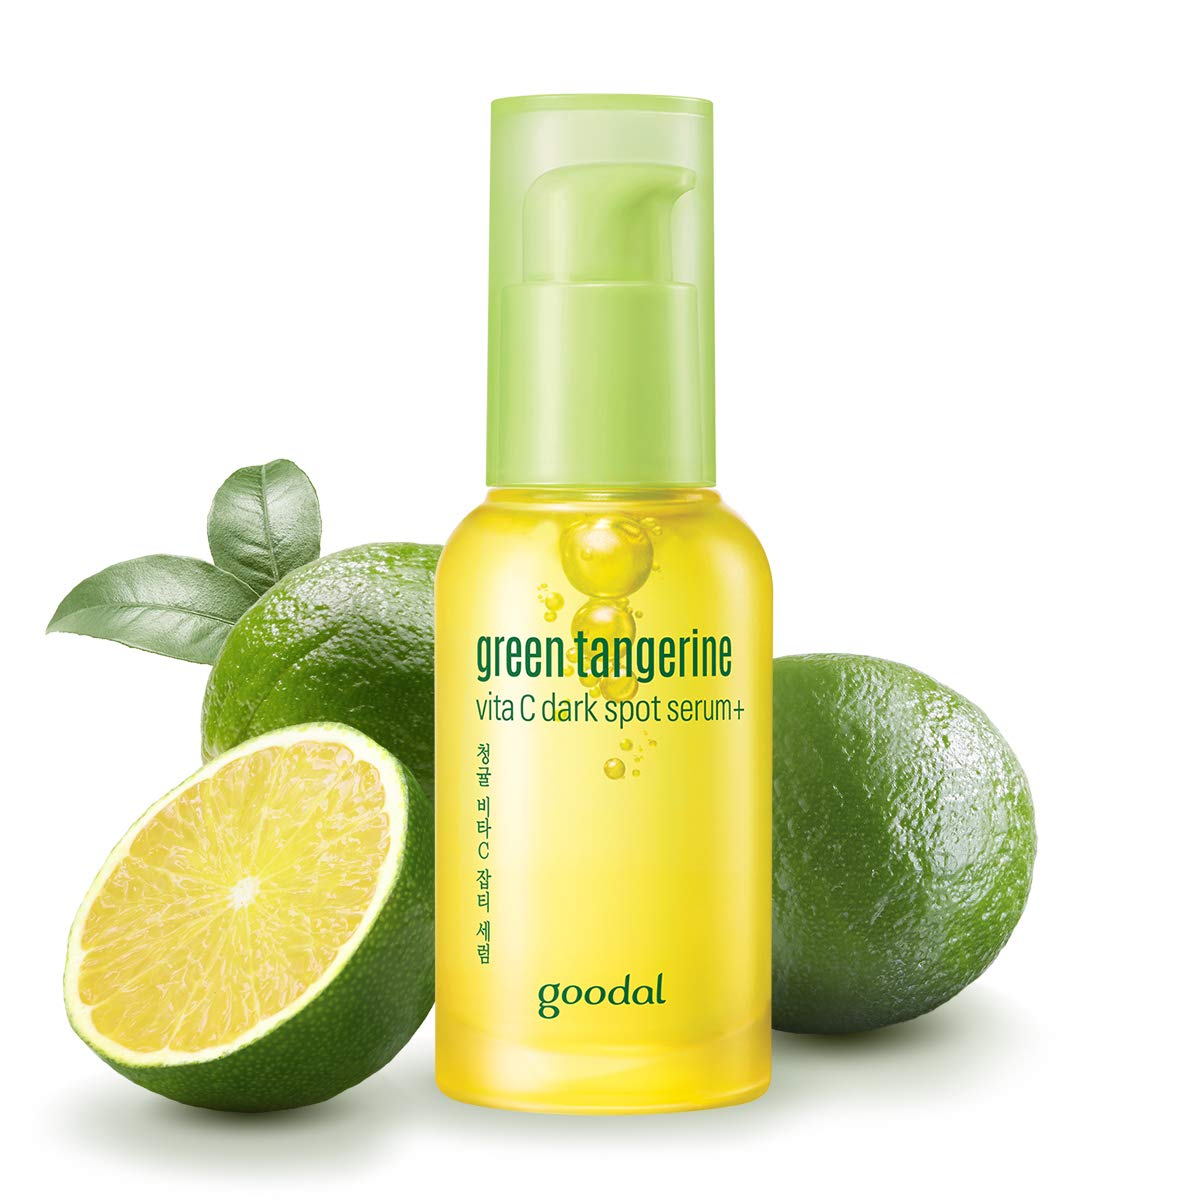 Goodal Green Tangerine Vitamin C Dark Spot Facial Serum+ for Sensitive Skin | Brightening, Dark Spot Treatment, Anti-Aging, Acne Scars, Fine Lines, Hyperpigmentation, and Dark Circles (1.0 fl oz)